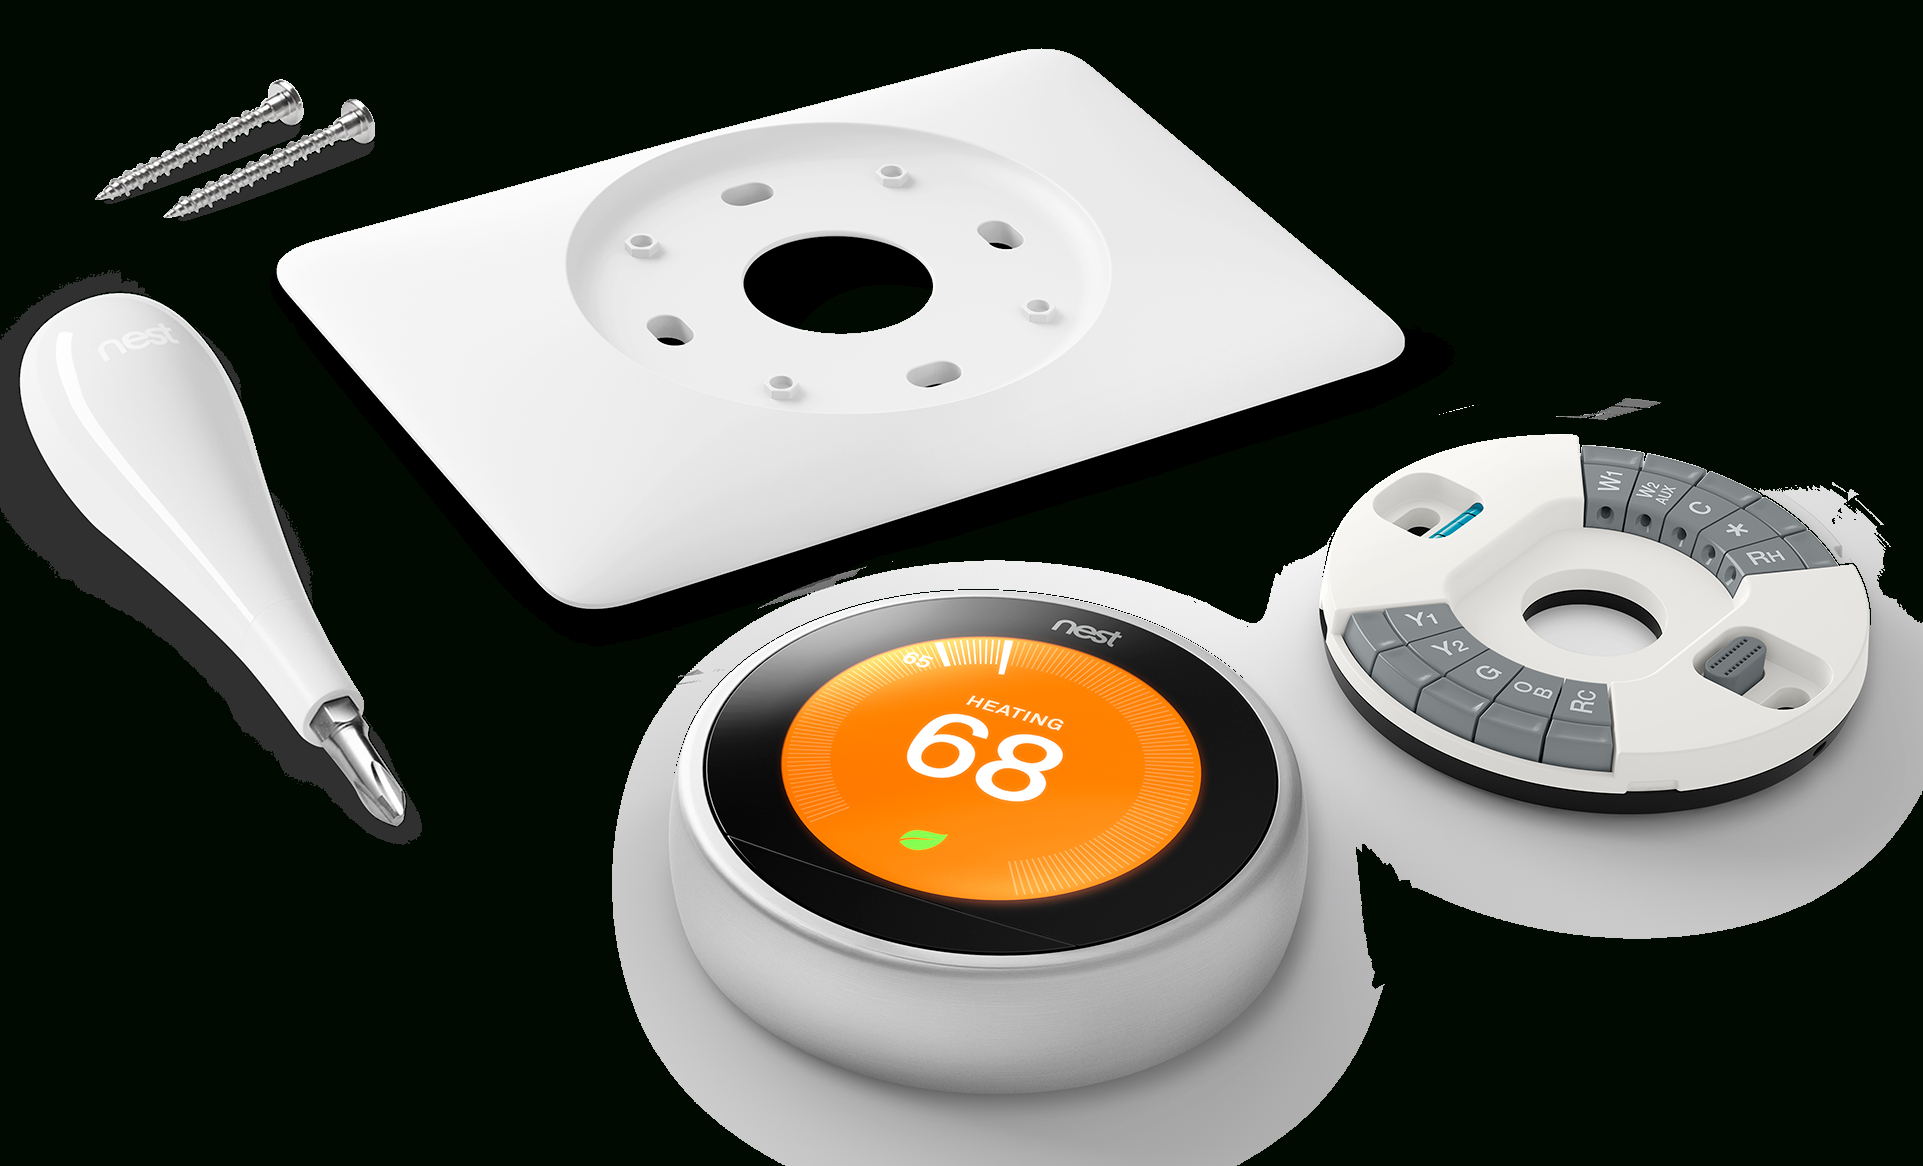 How To Install Your Nest Thermostat - Nest T4000Es Wiring Diagram